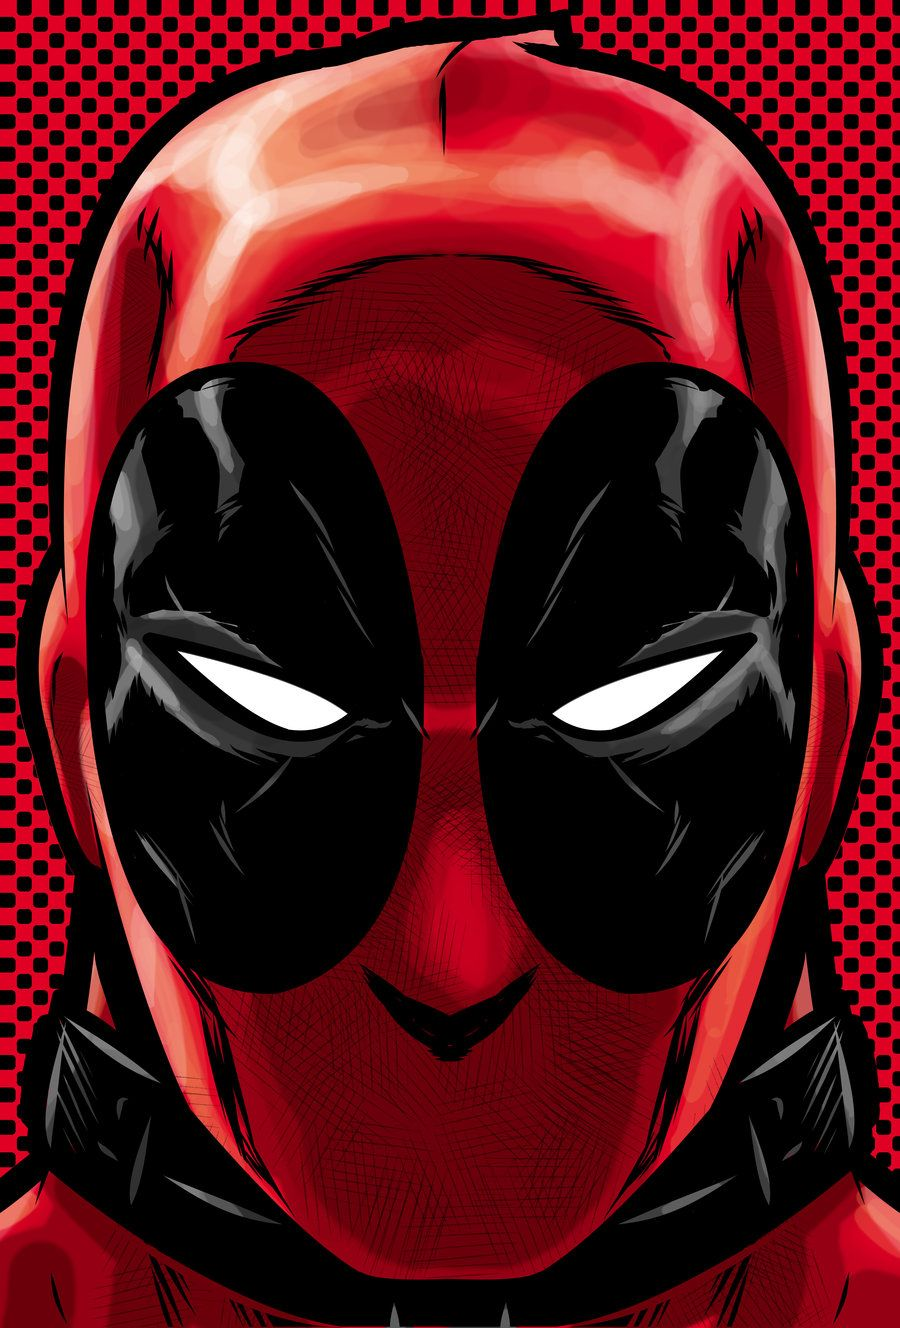 Dead Pool P. Series by =Thuddleston on deviantART